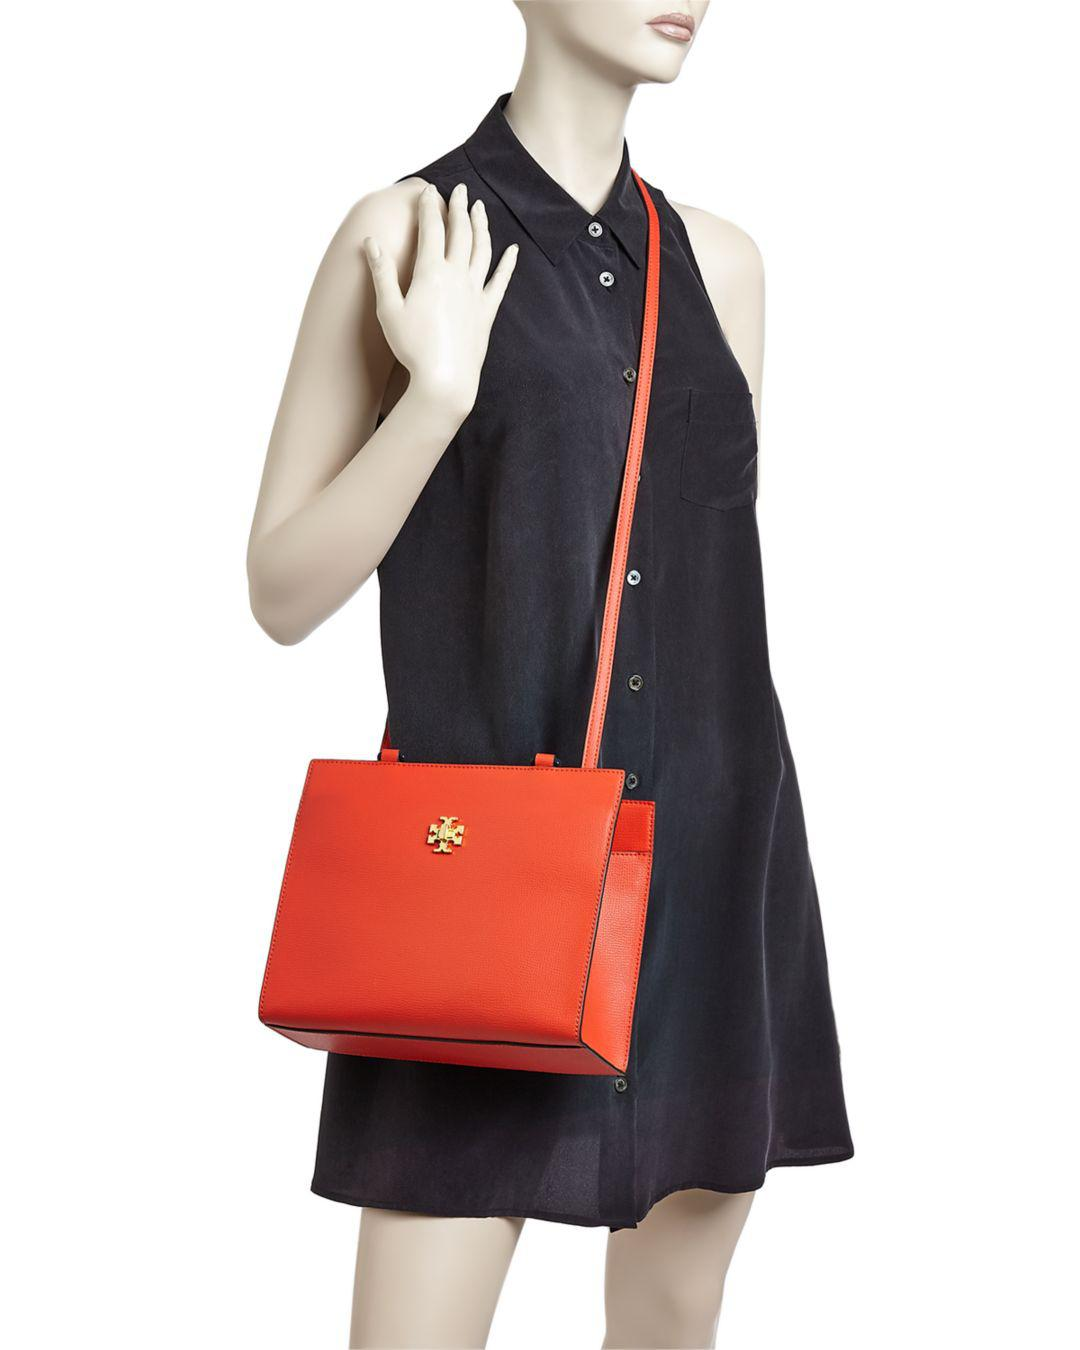 74992b3b1980 Lyst - Tory Burch Kira Small Leather Tote in Red